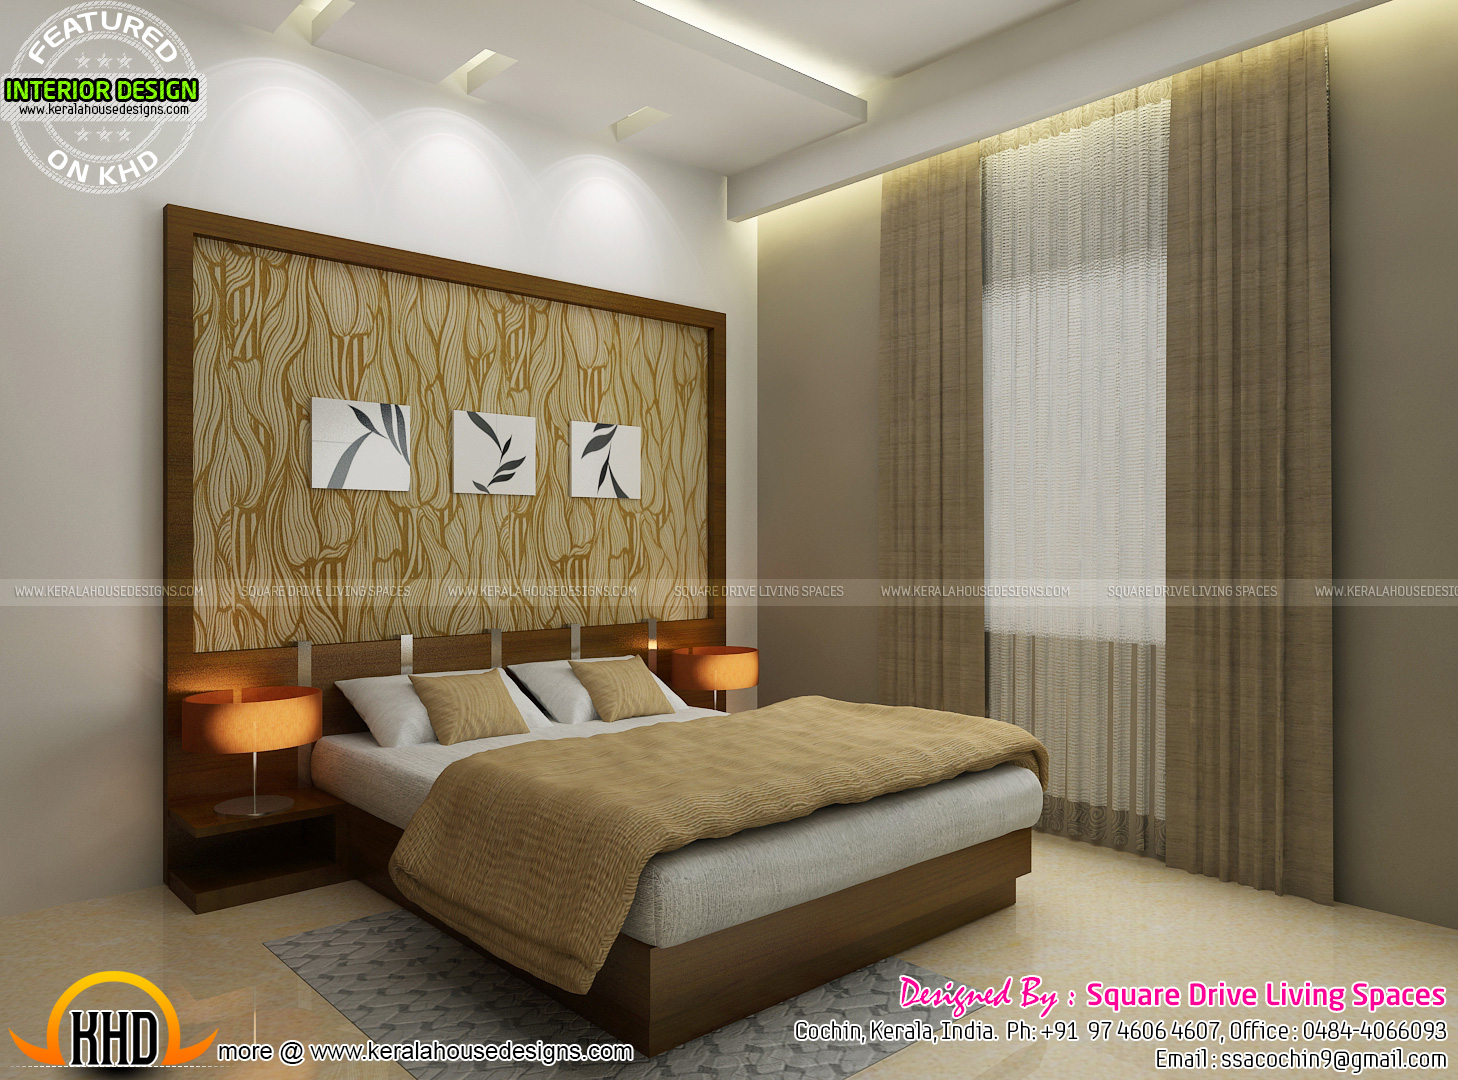 Interior designs of master bedroom living kitchen and for Interior design rooms gallery